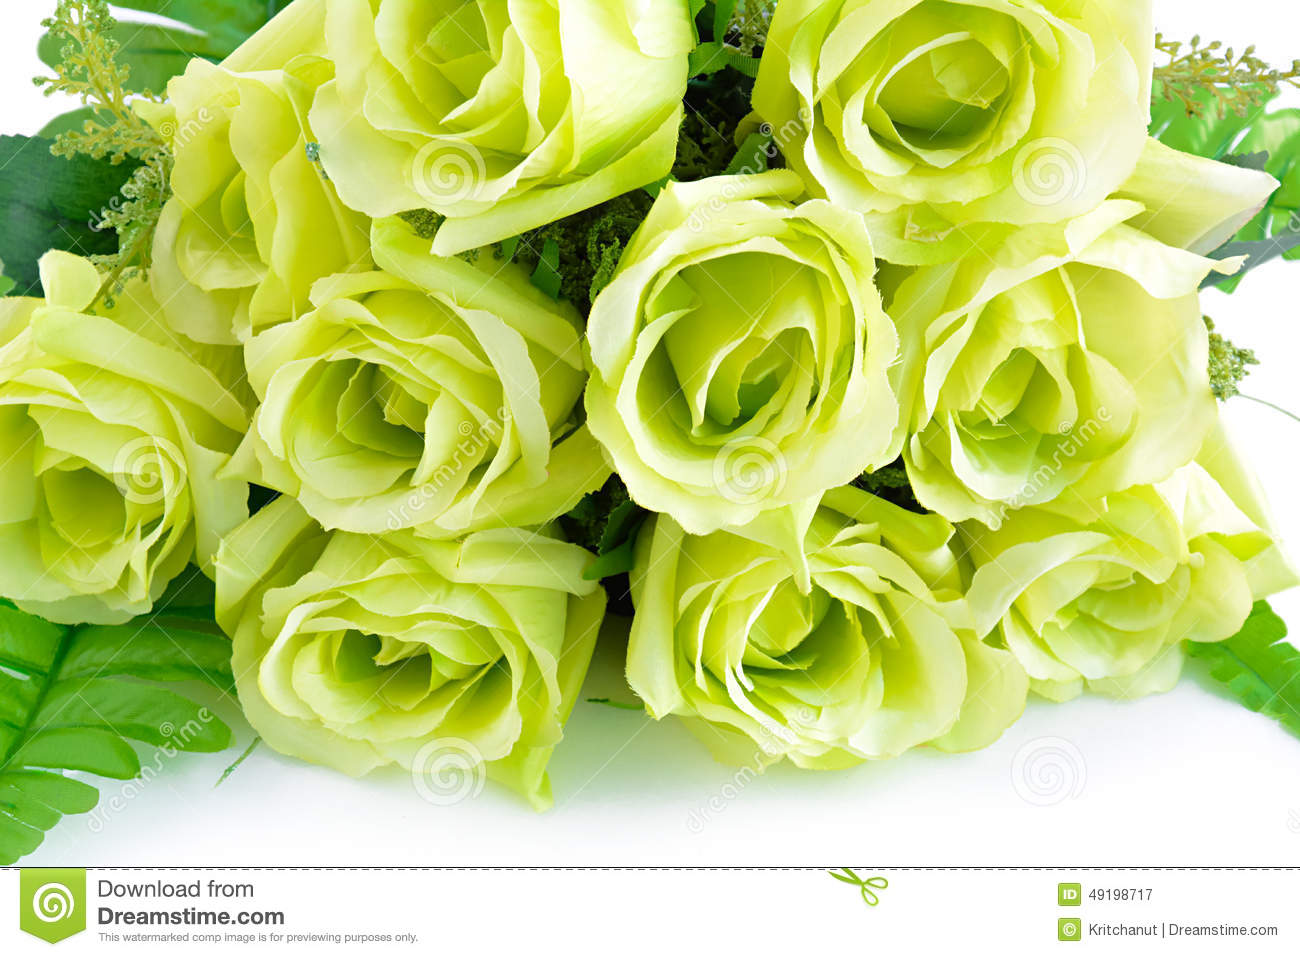 Green Flower Bouquet On White Background Stock Image - Image of ...